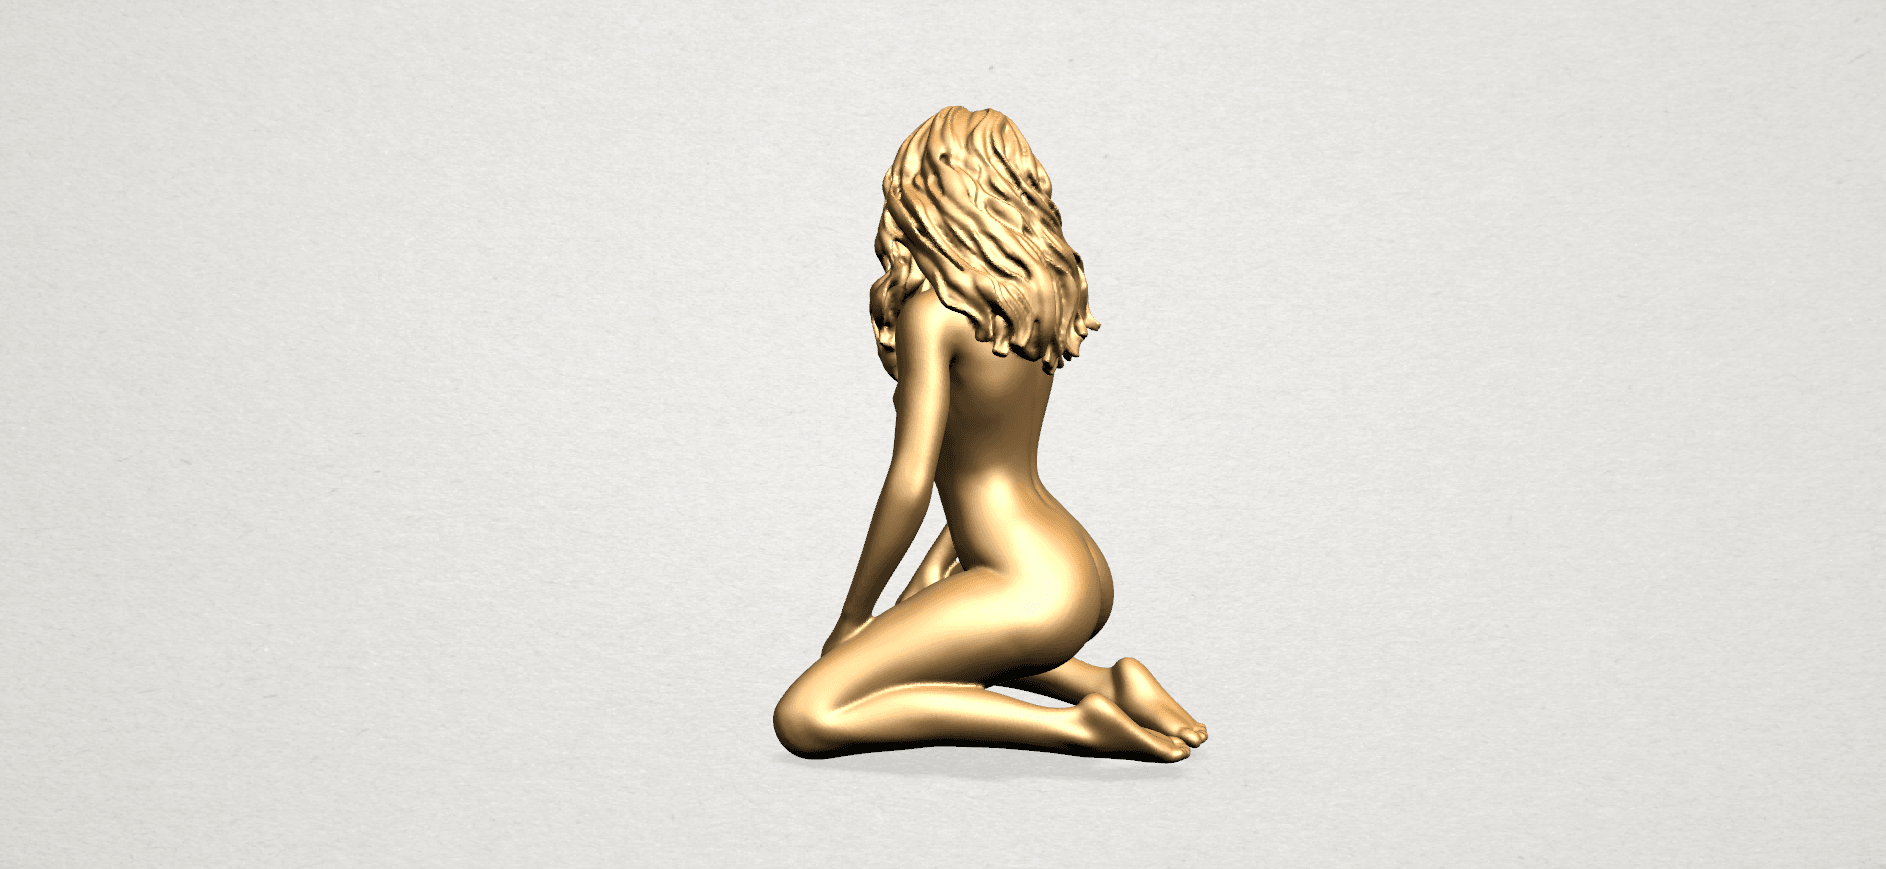 Naked girl - bended knees (II)-B03.png Download free STL file Naked girl - Bended Knees 02 -TOP MODEL • 3D printing object, GeorgesNikkei